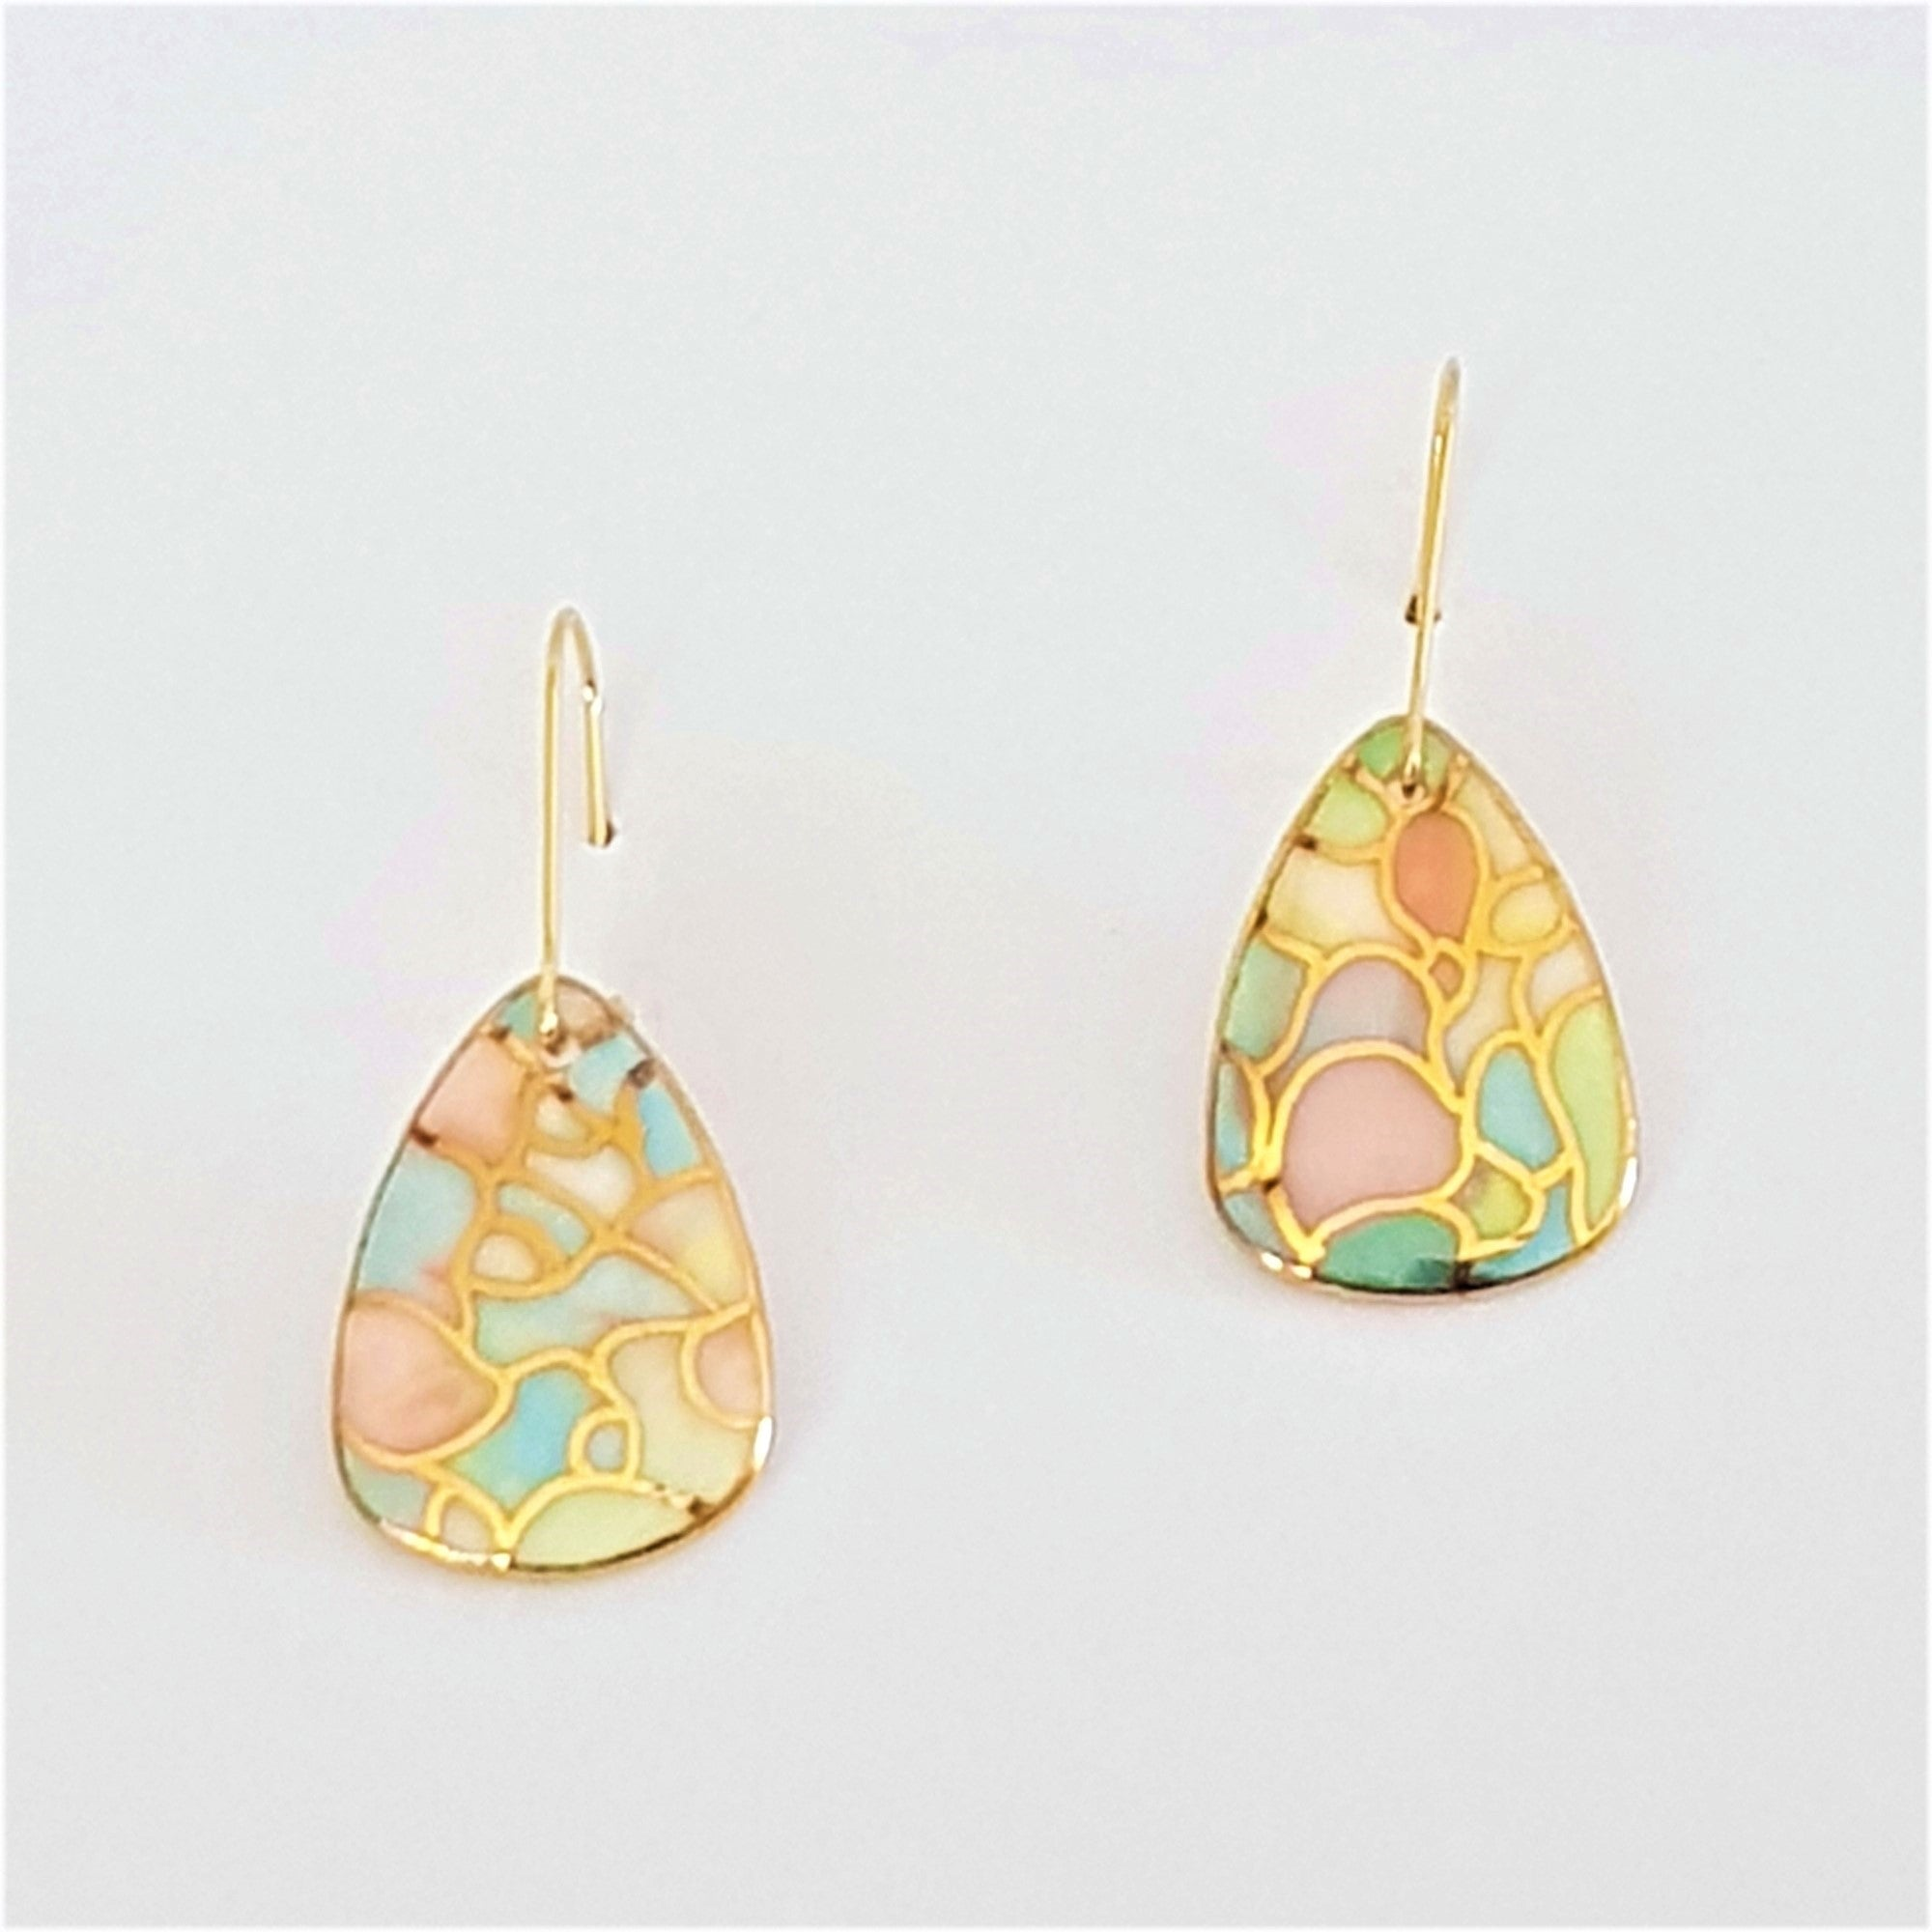 Porcelain mini dangle earrings in soft pastels with gold linework